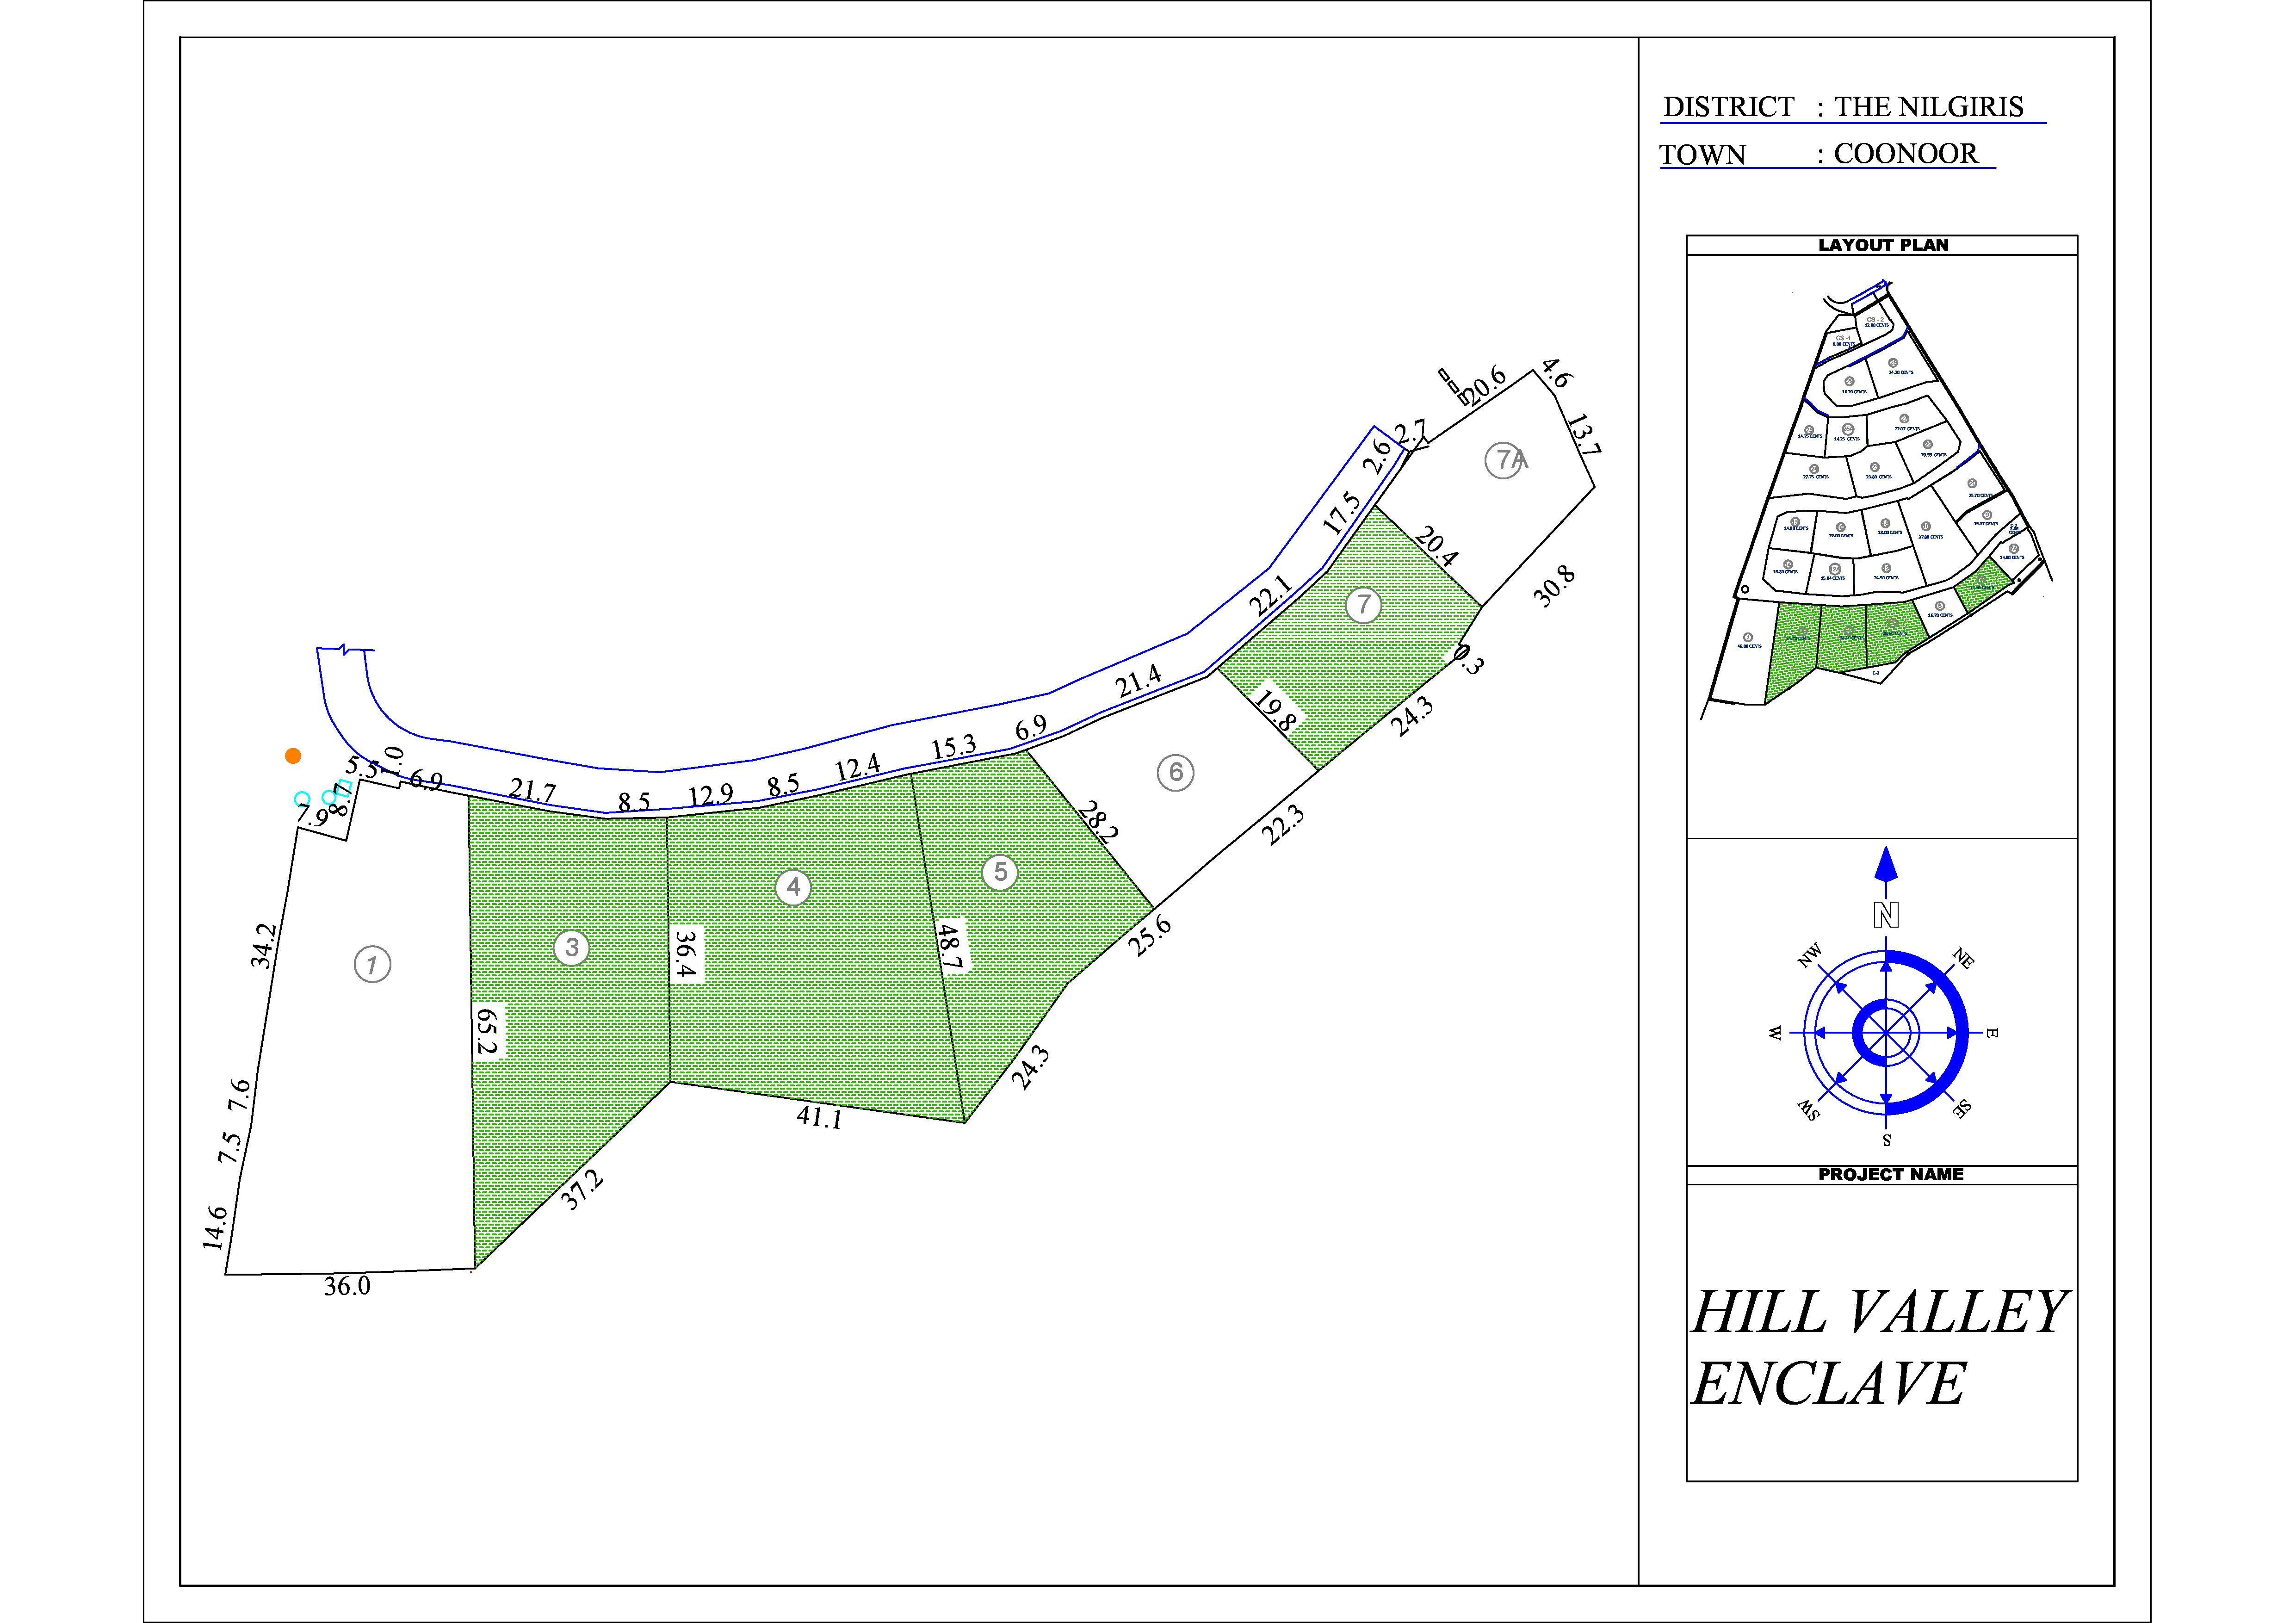 Hill Valley Enclave Layout